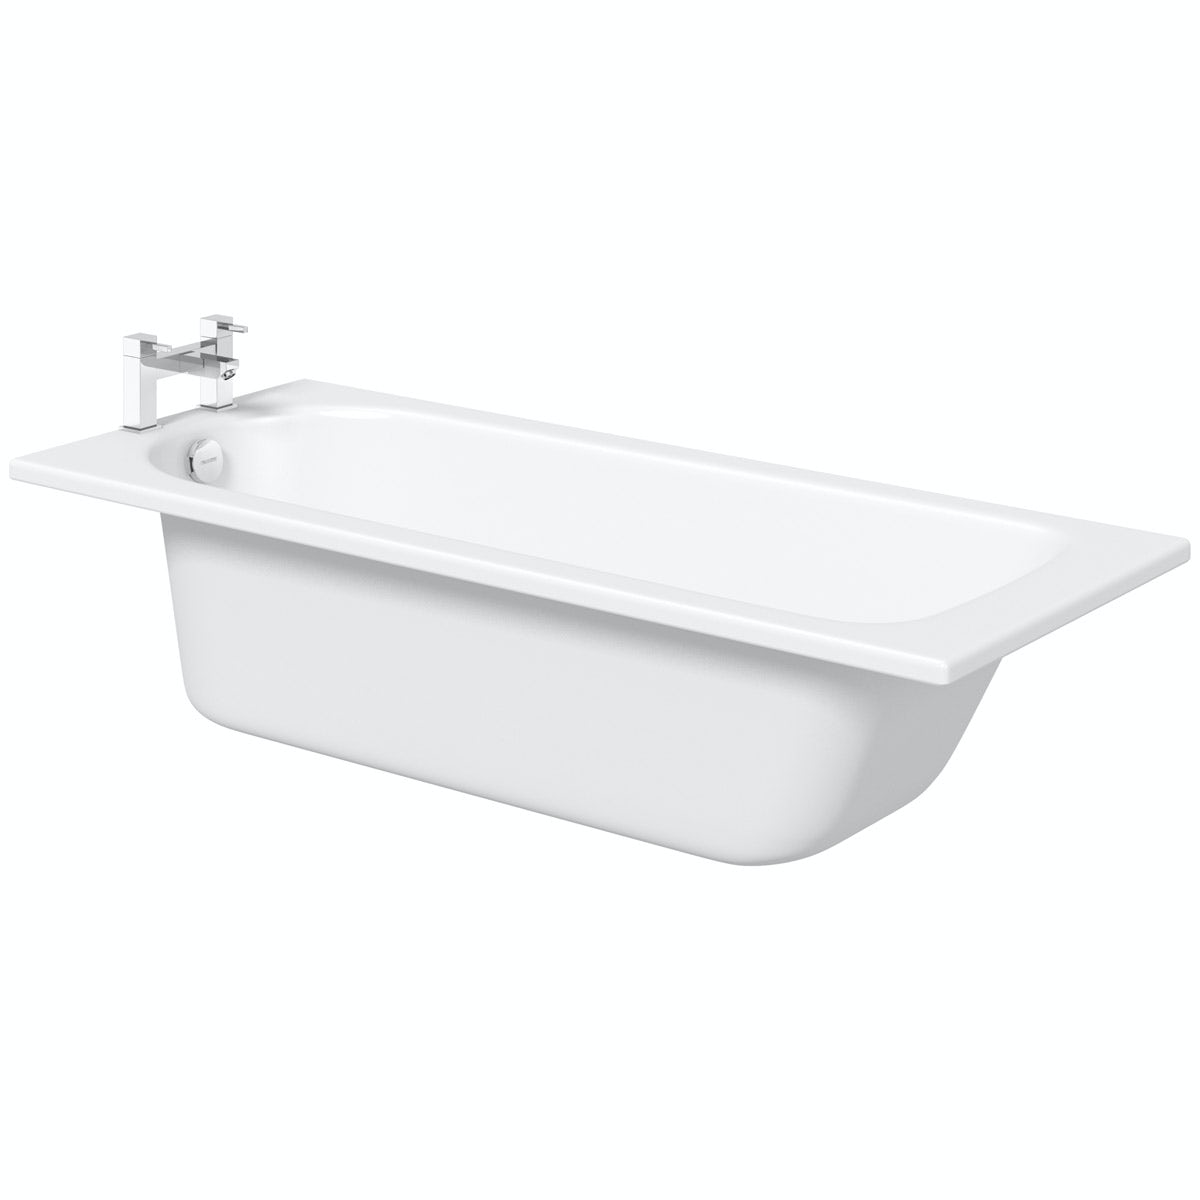 Kaldewei Saniform Plus straight steel bath with leg set